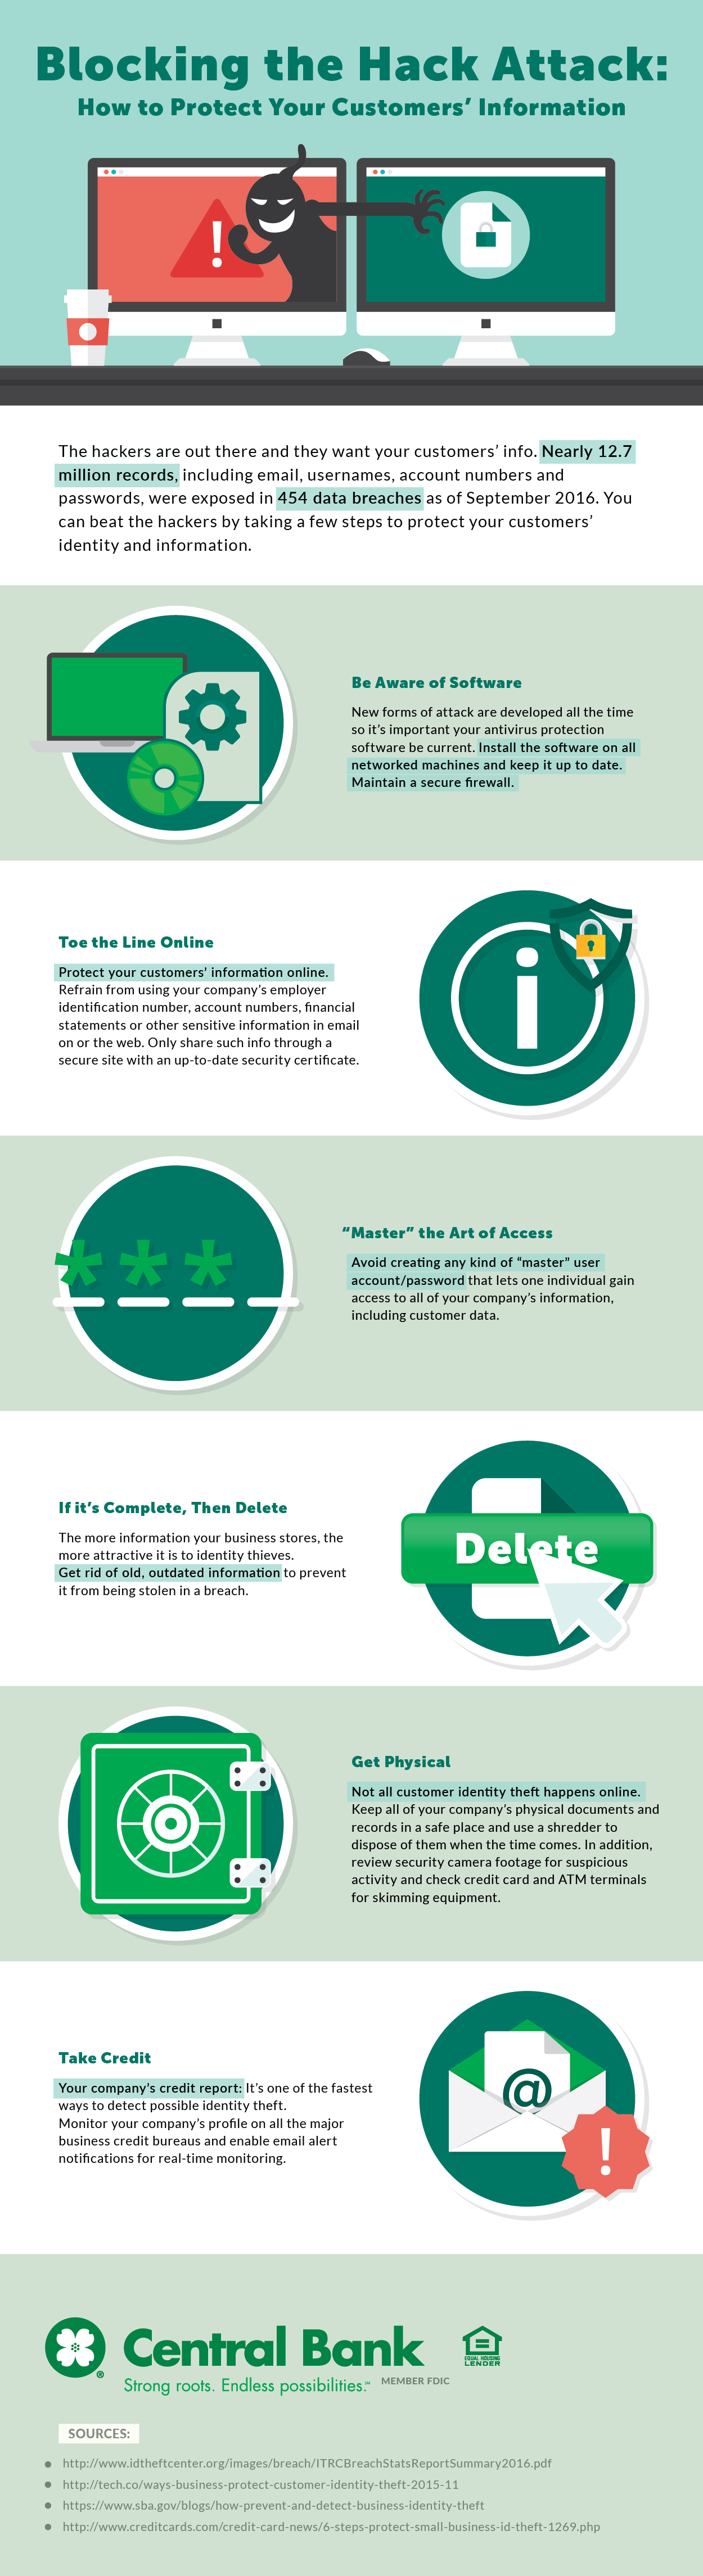 an infographic outlining how a company can protect customer information